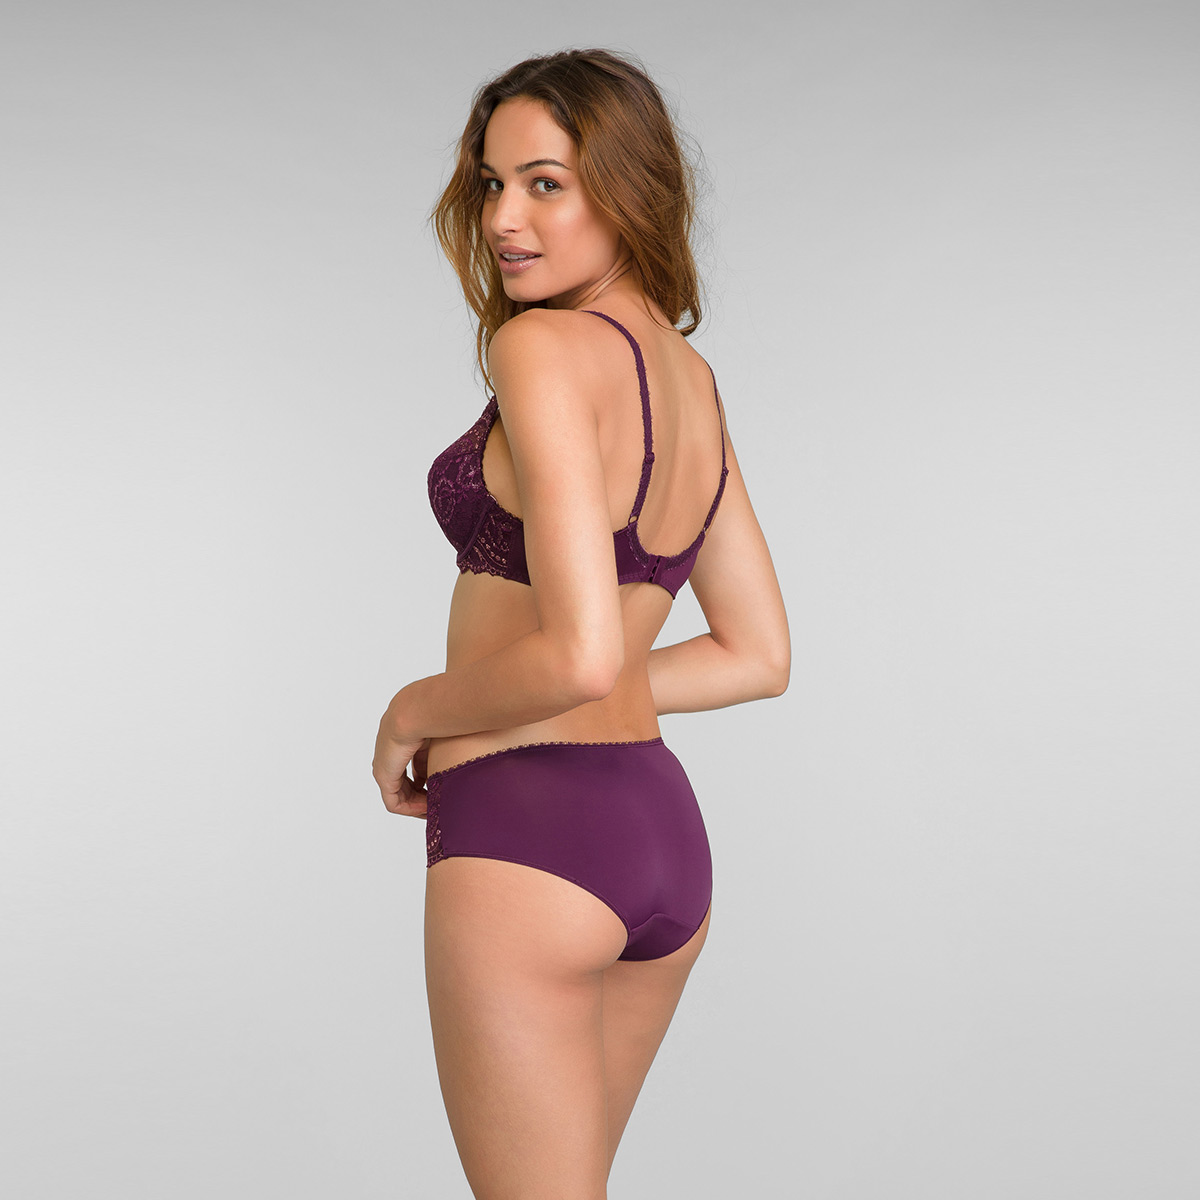 Midi Knickers in Dark Berry Lurex Flower Elegance, , PLAYTEX